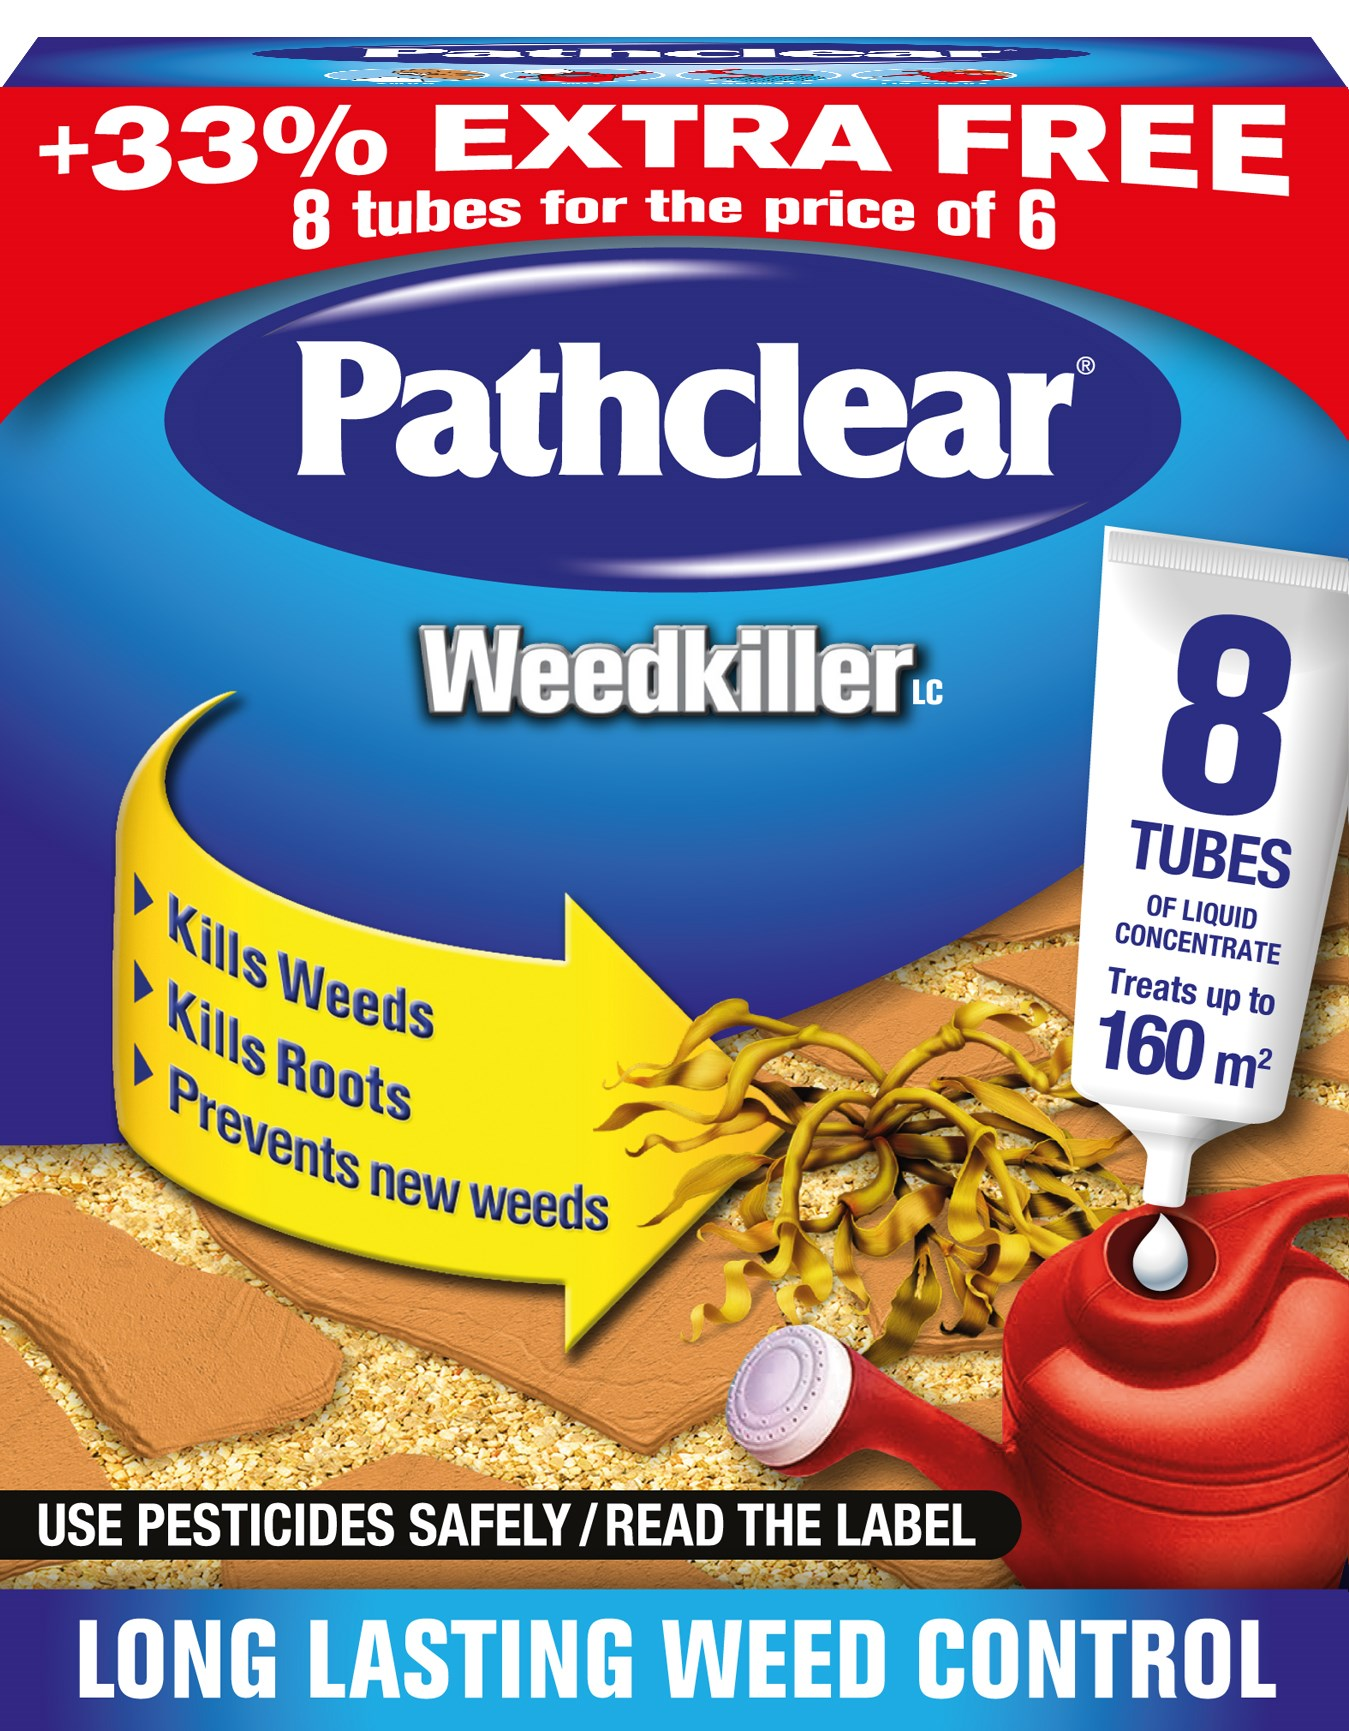 Scotts Pathclear Weedkiller Tubes - 6 Pack +33% Free